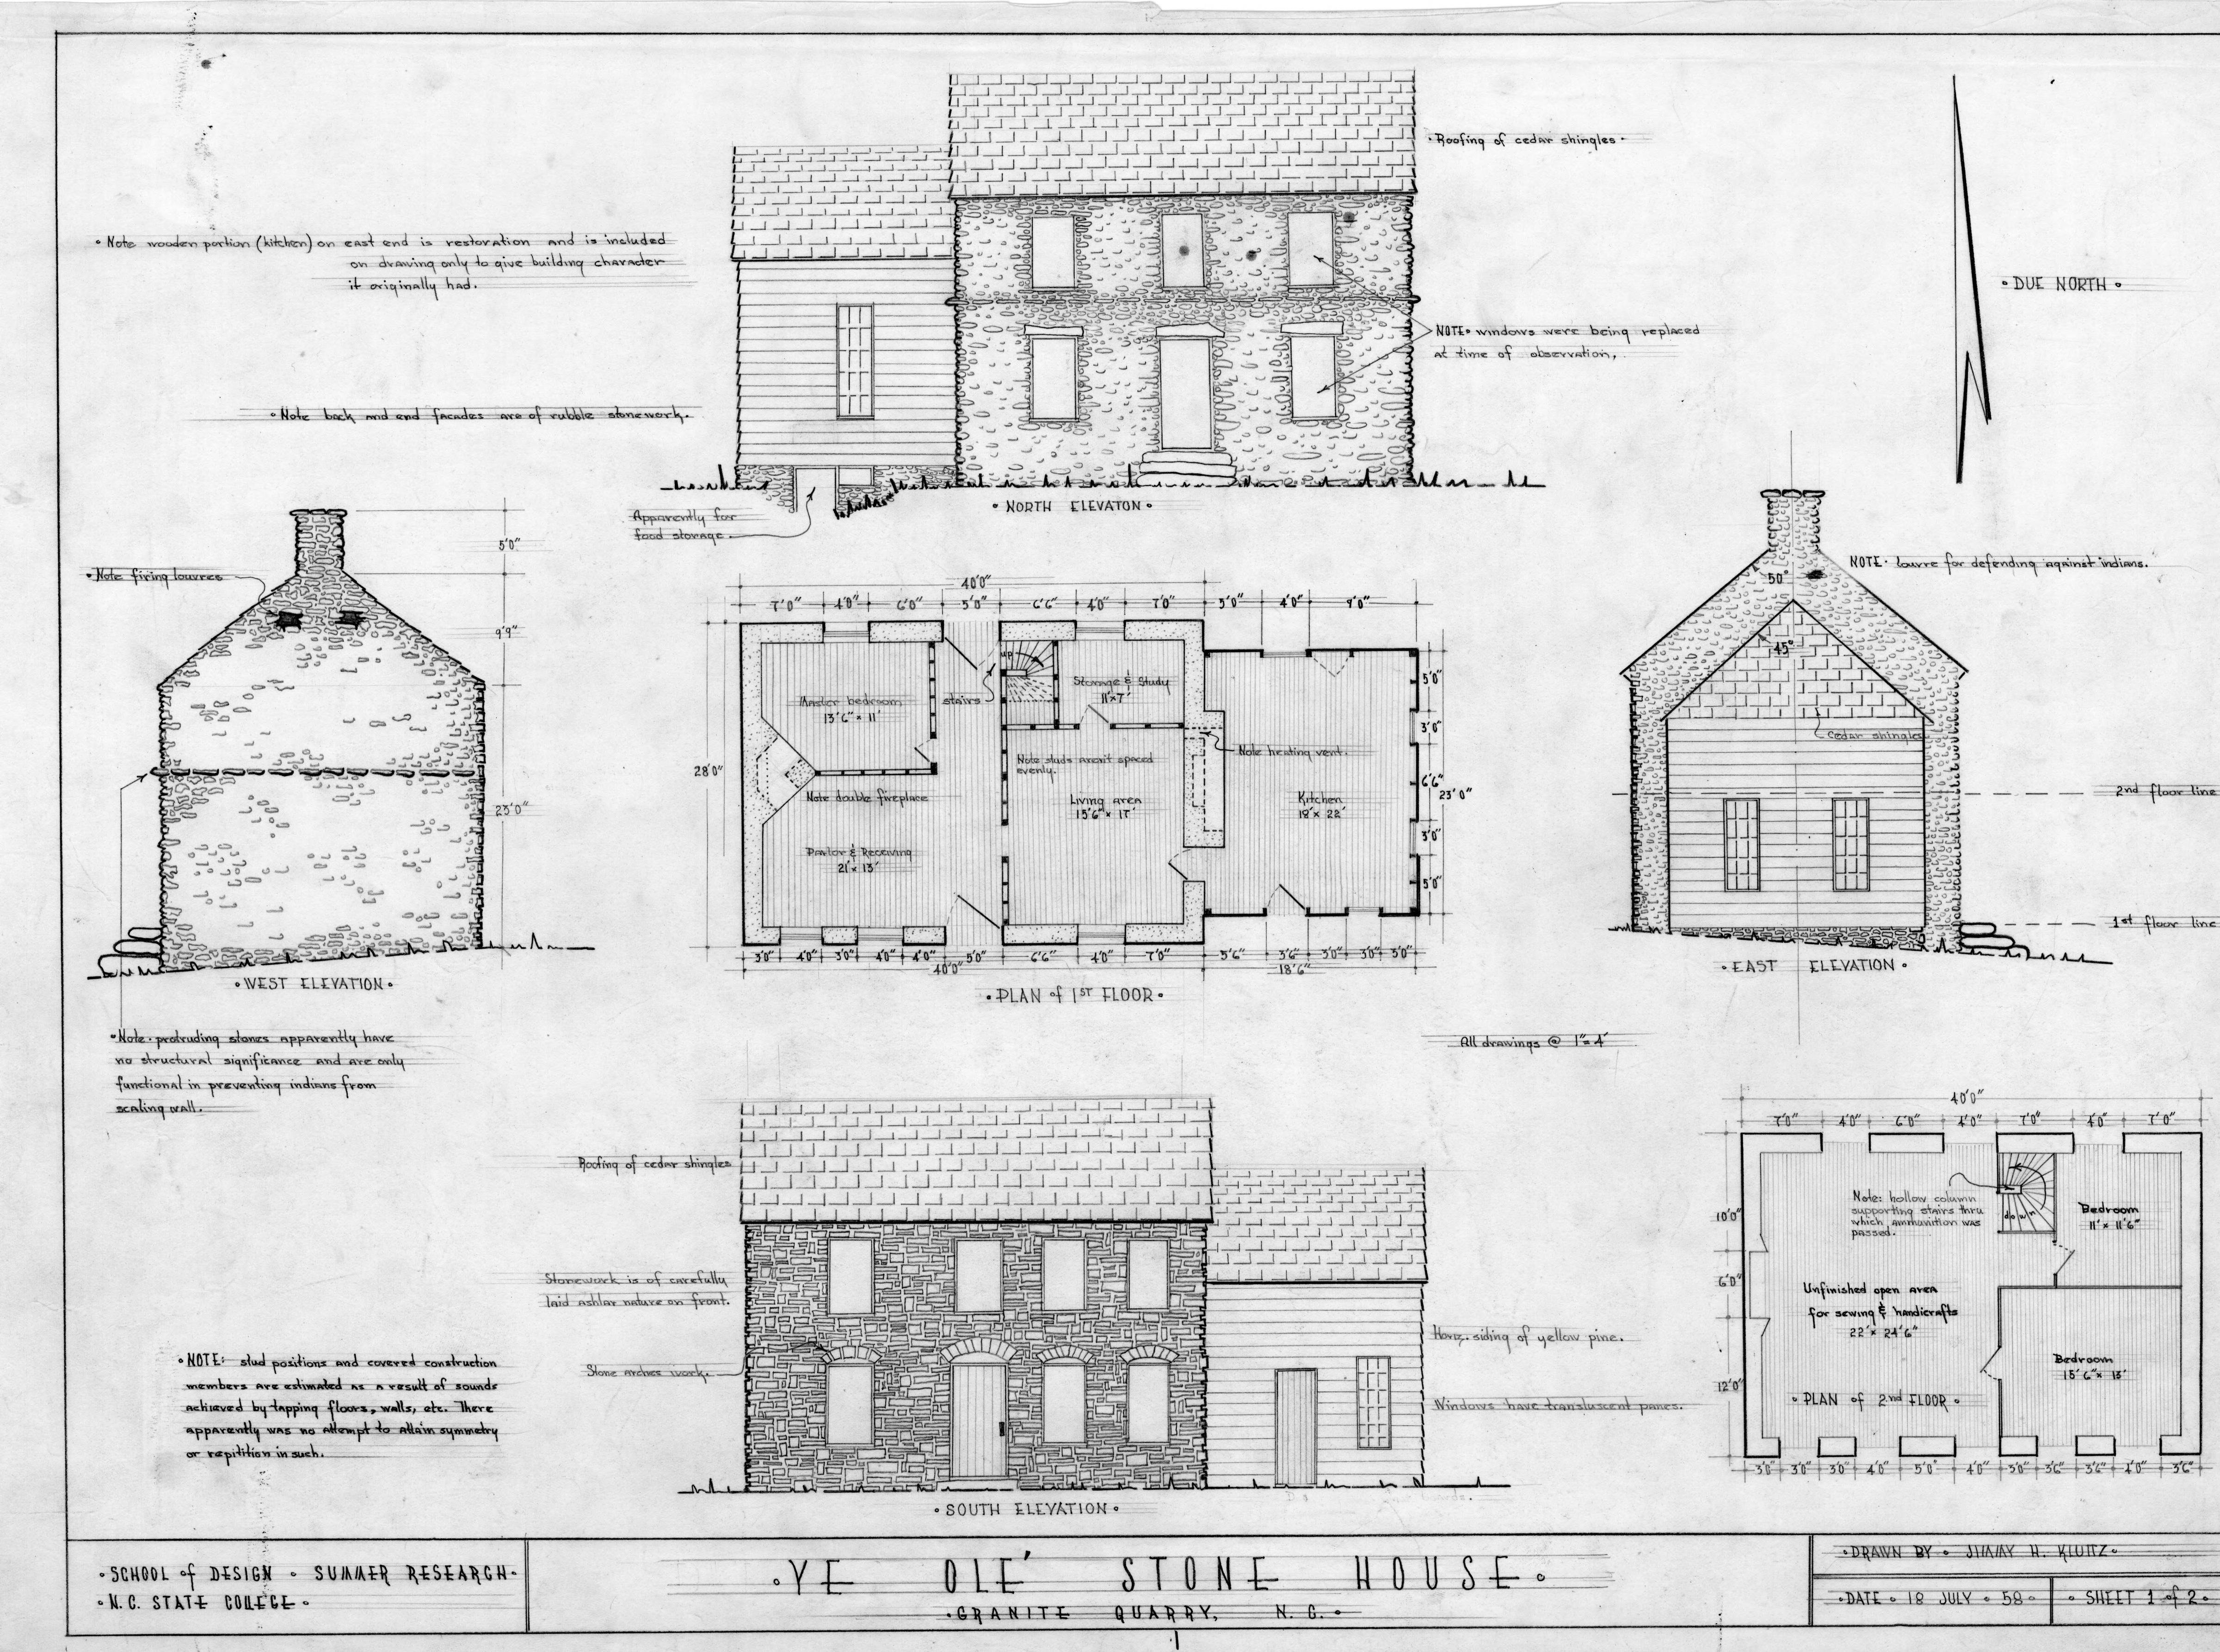 elevations and floor plans michael braun house rowan louis kahn fisher house drawings of scale house plan